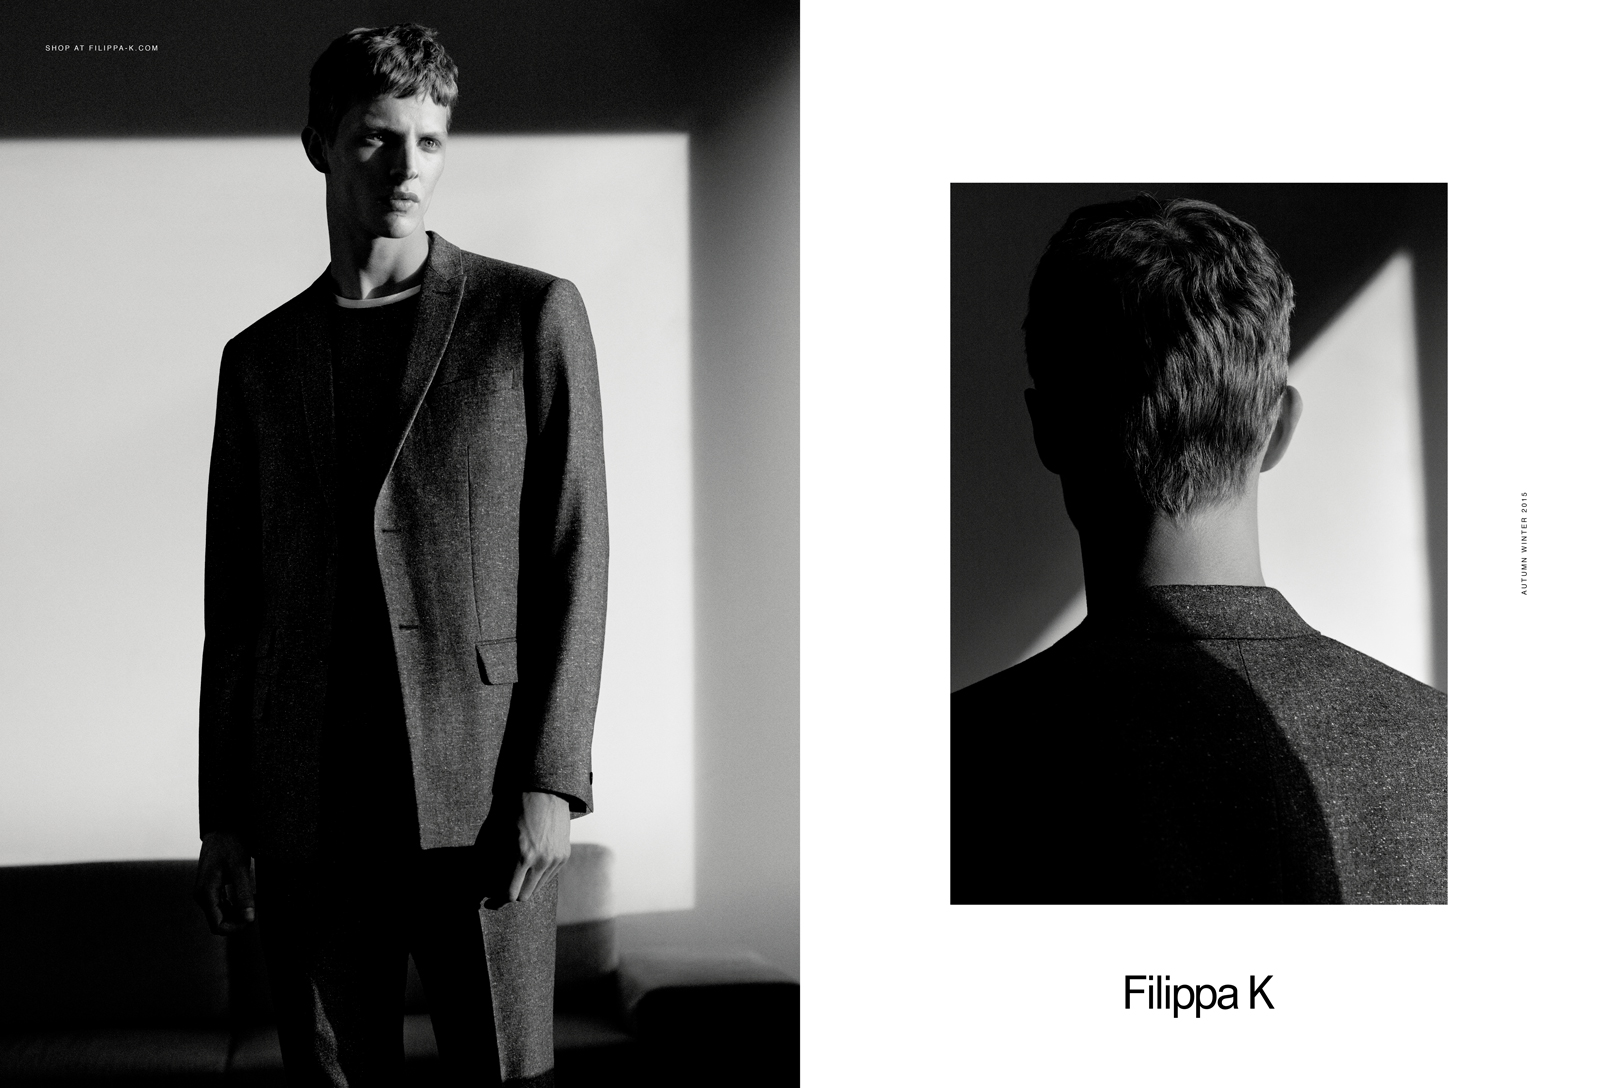 fk_aw15_dps-layout6